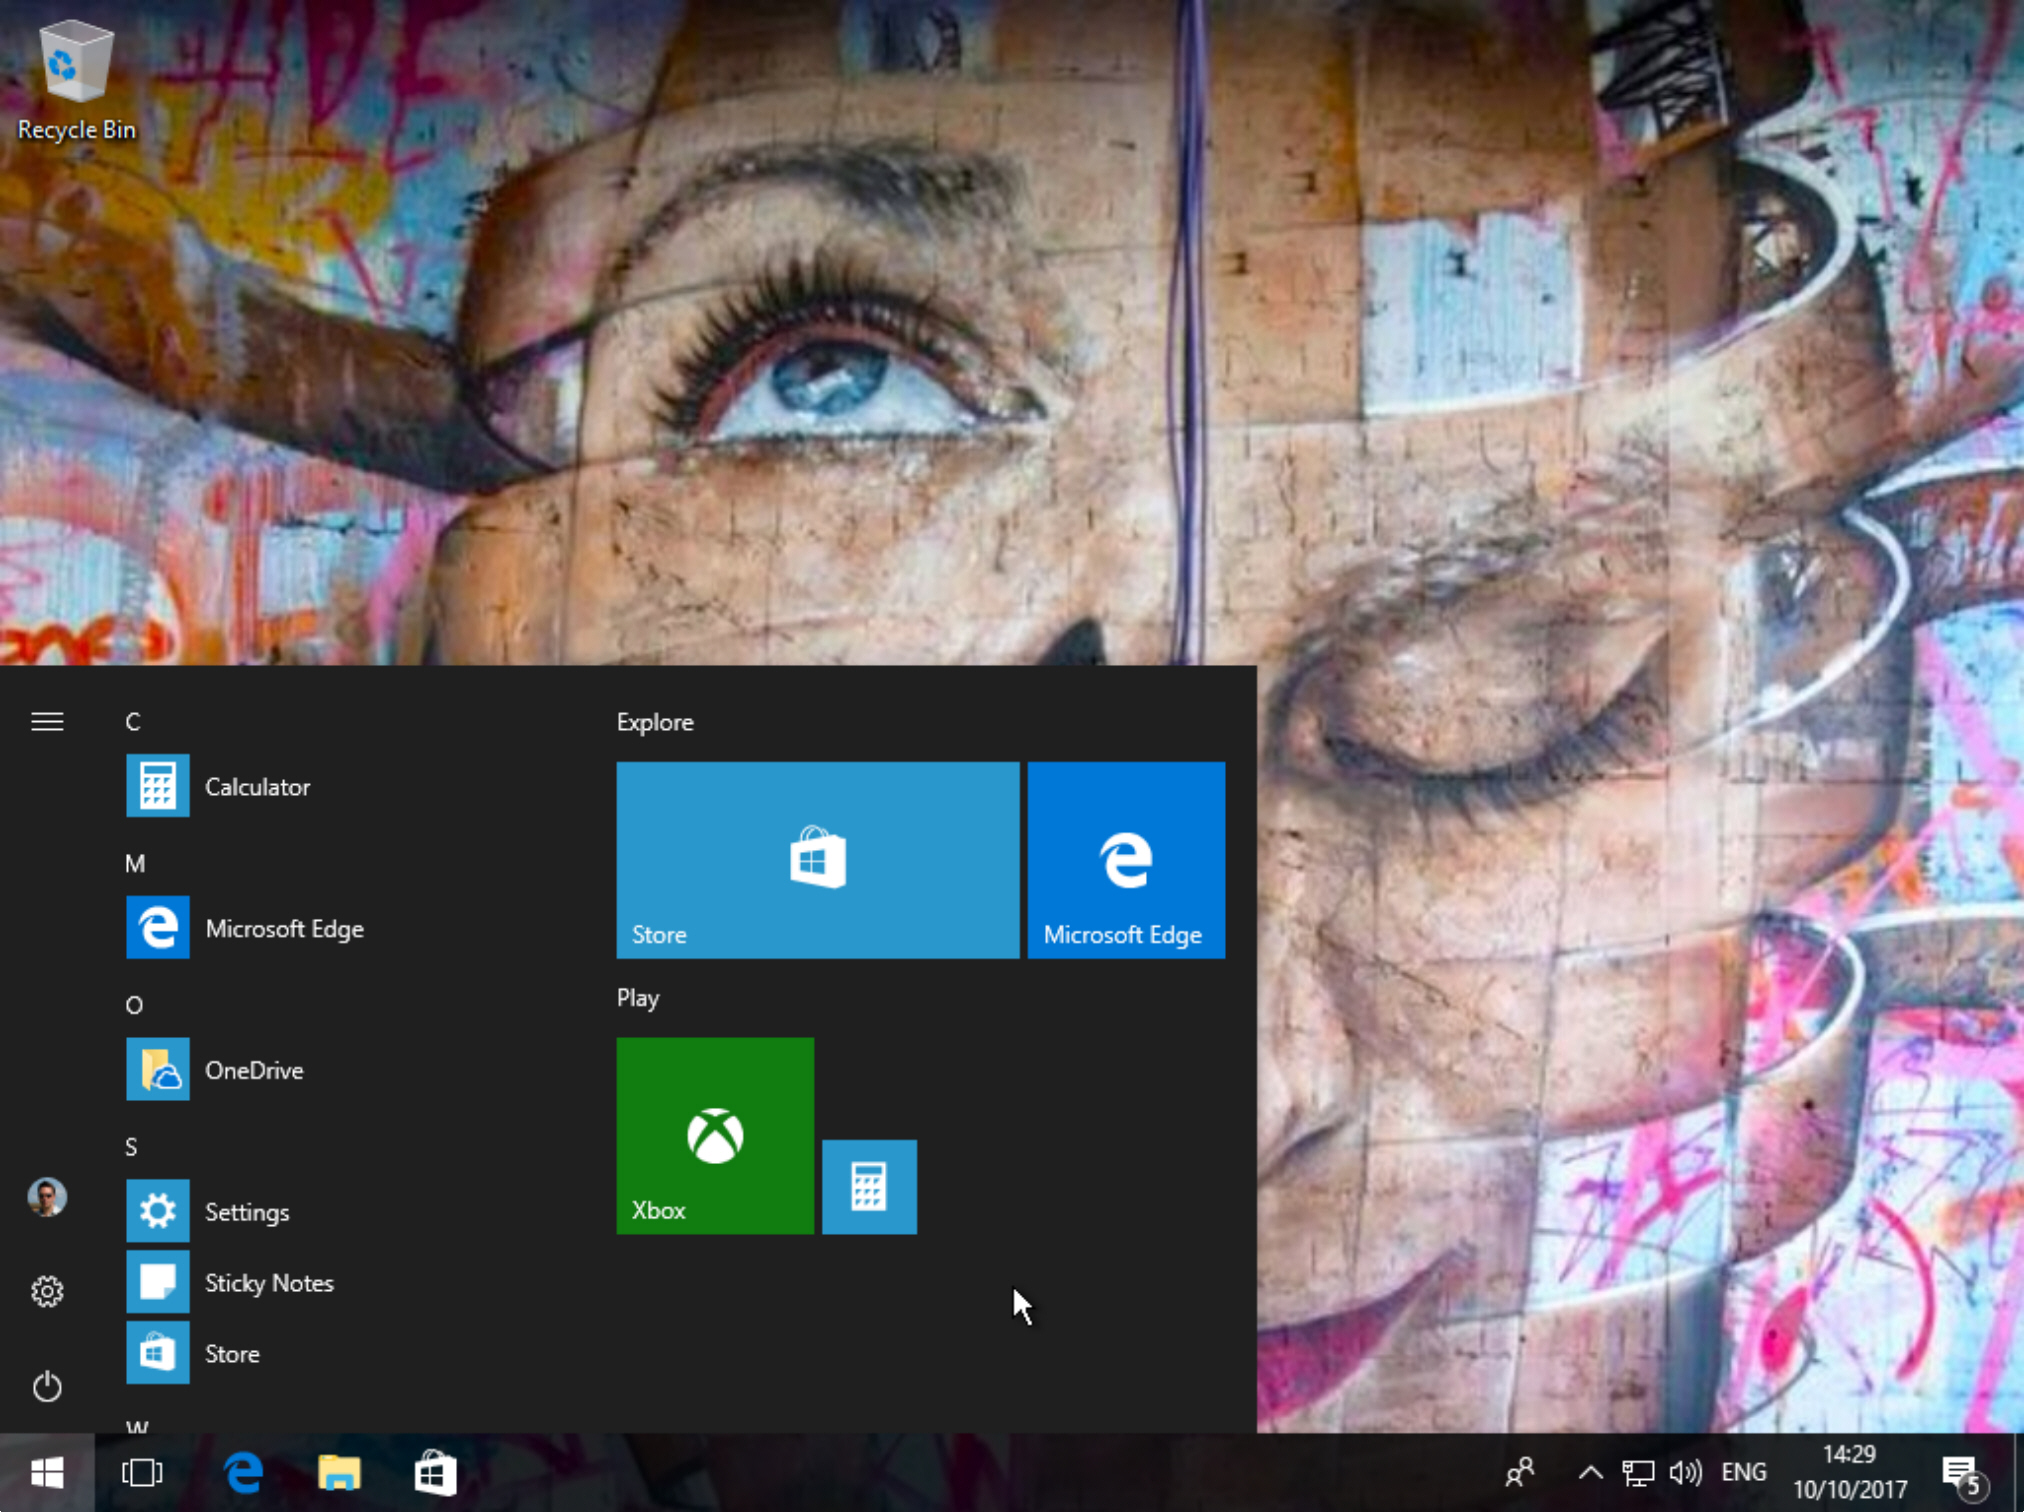 Microsoft Windows 10 update pushes new app minus details